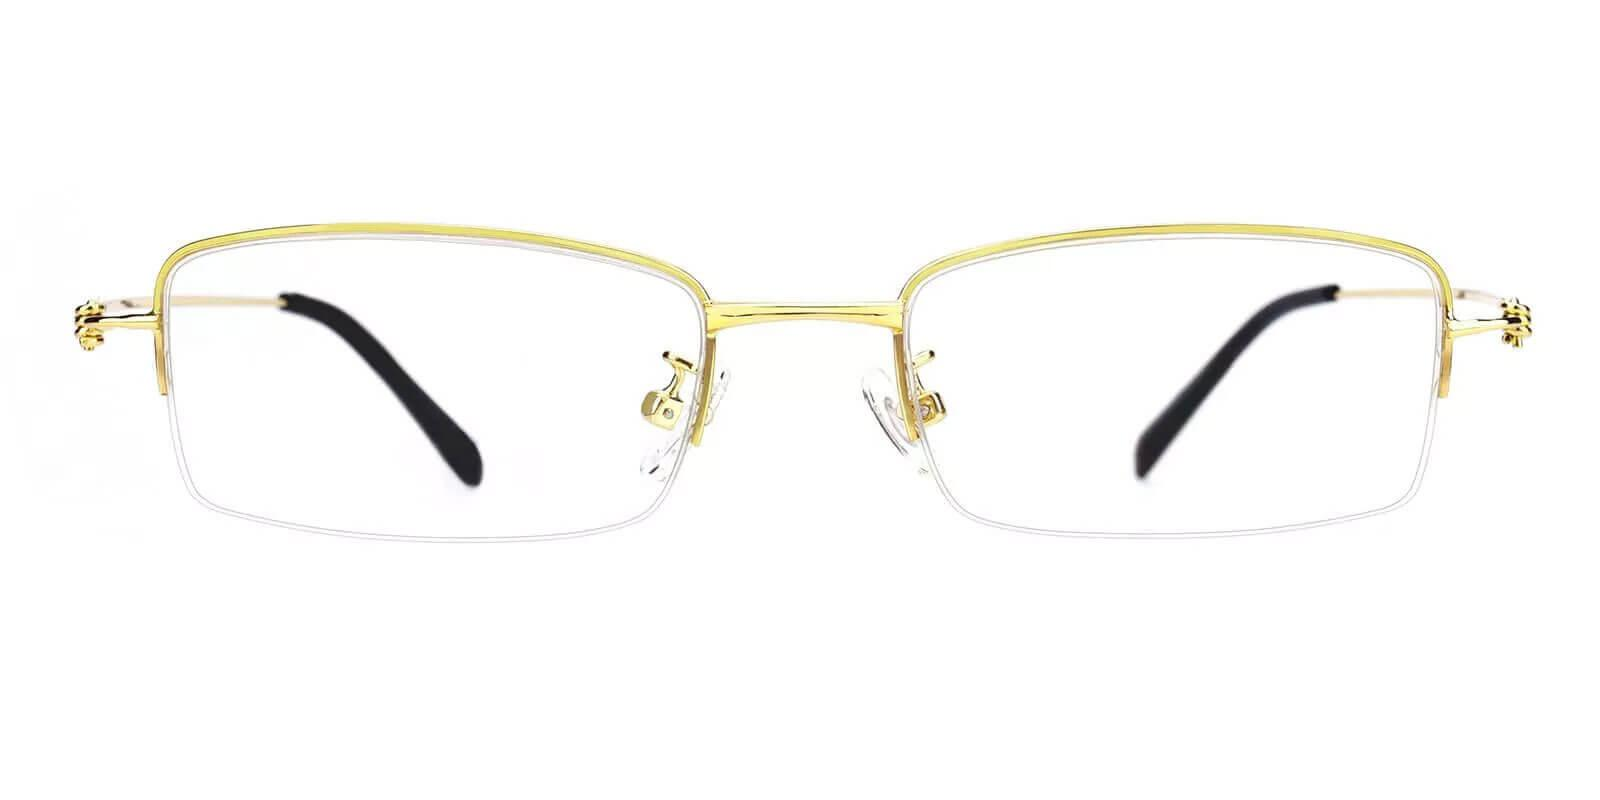 Chris Gold Metal Eyeglasses , NosePads Frames from ABBE Glasses